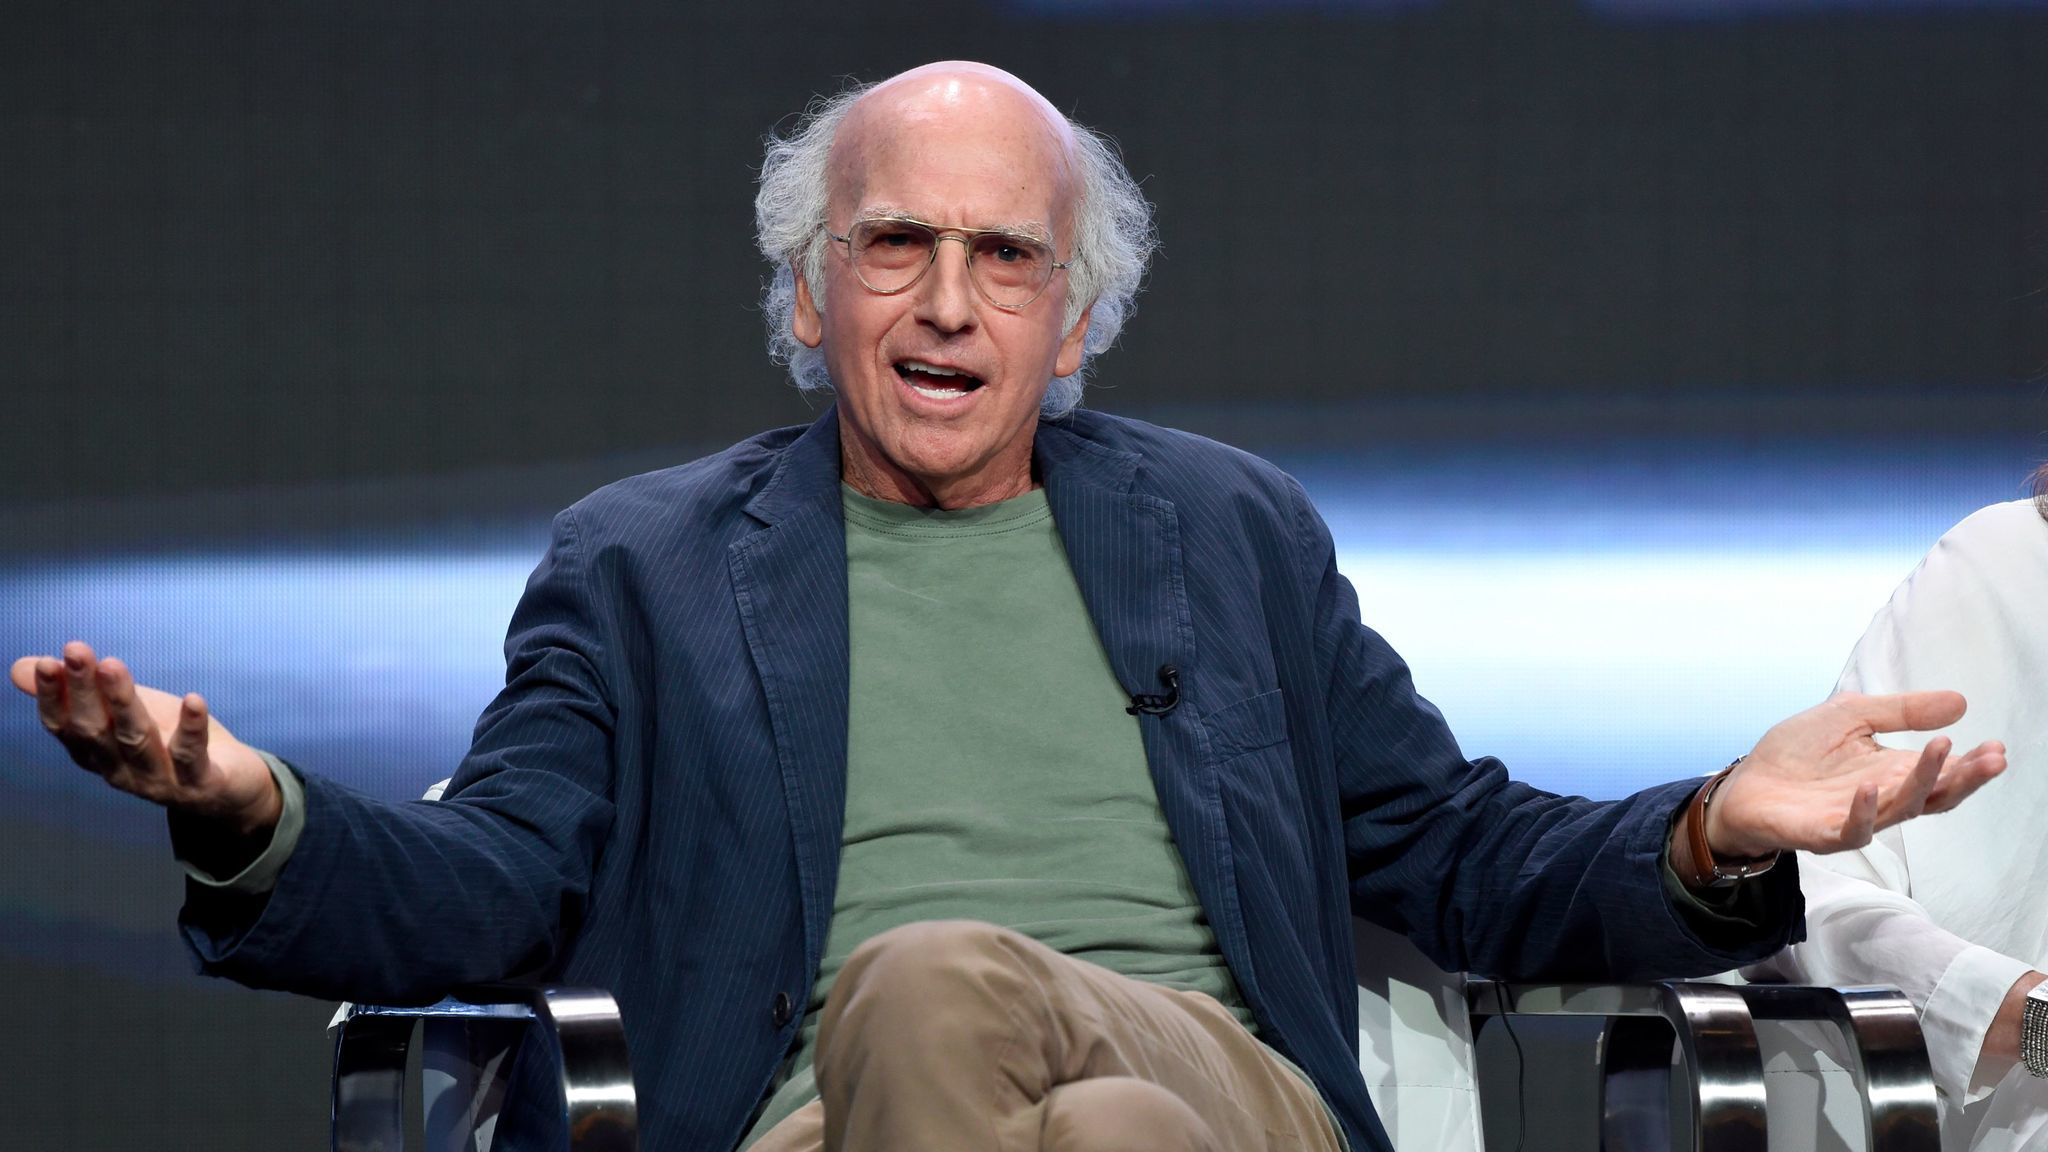 Larry David explains why 'Curb Your Enthusiasm' is returning this fall